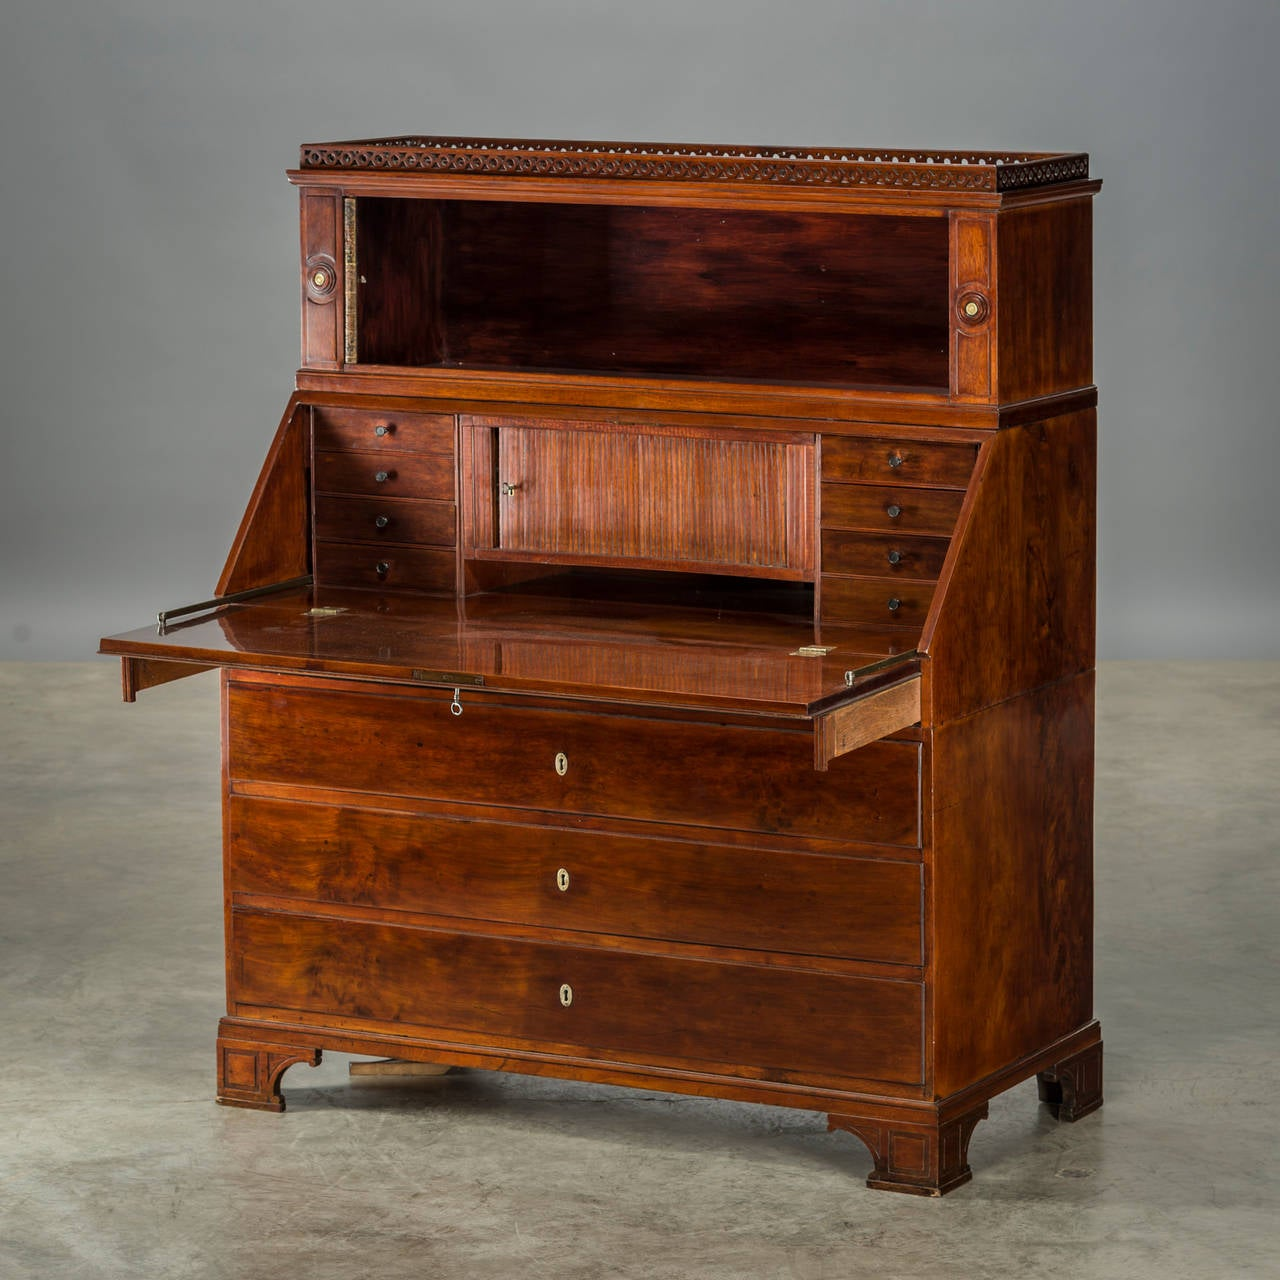 louis xvi bureau copenhagen circa 1780 for sale at 1stdibs. Black Bedroom Furniture Sets. Home Design Ideas